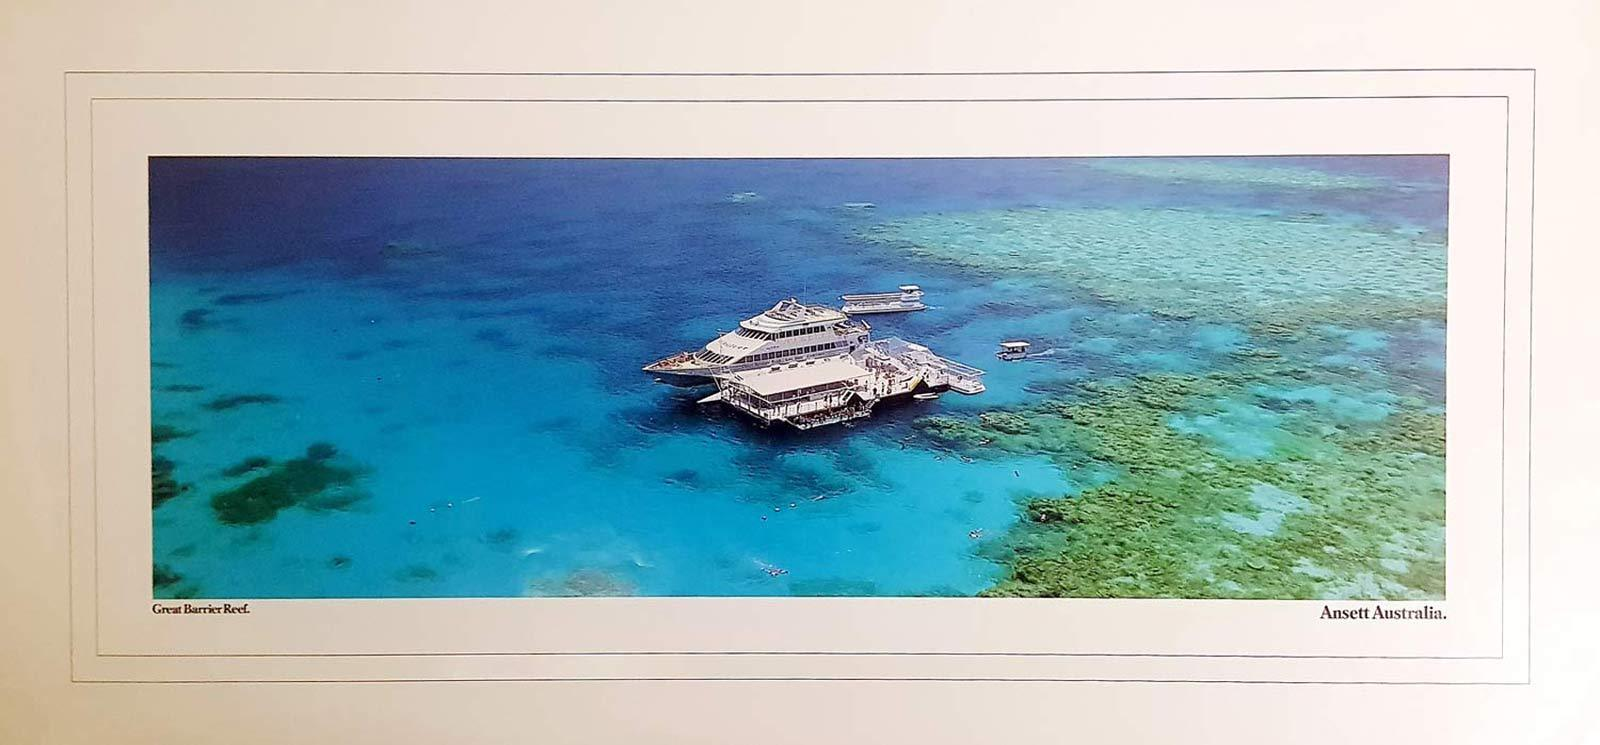 ANSETT Vintage Travel Poster GREAT BARRIER REEF Panorama